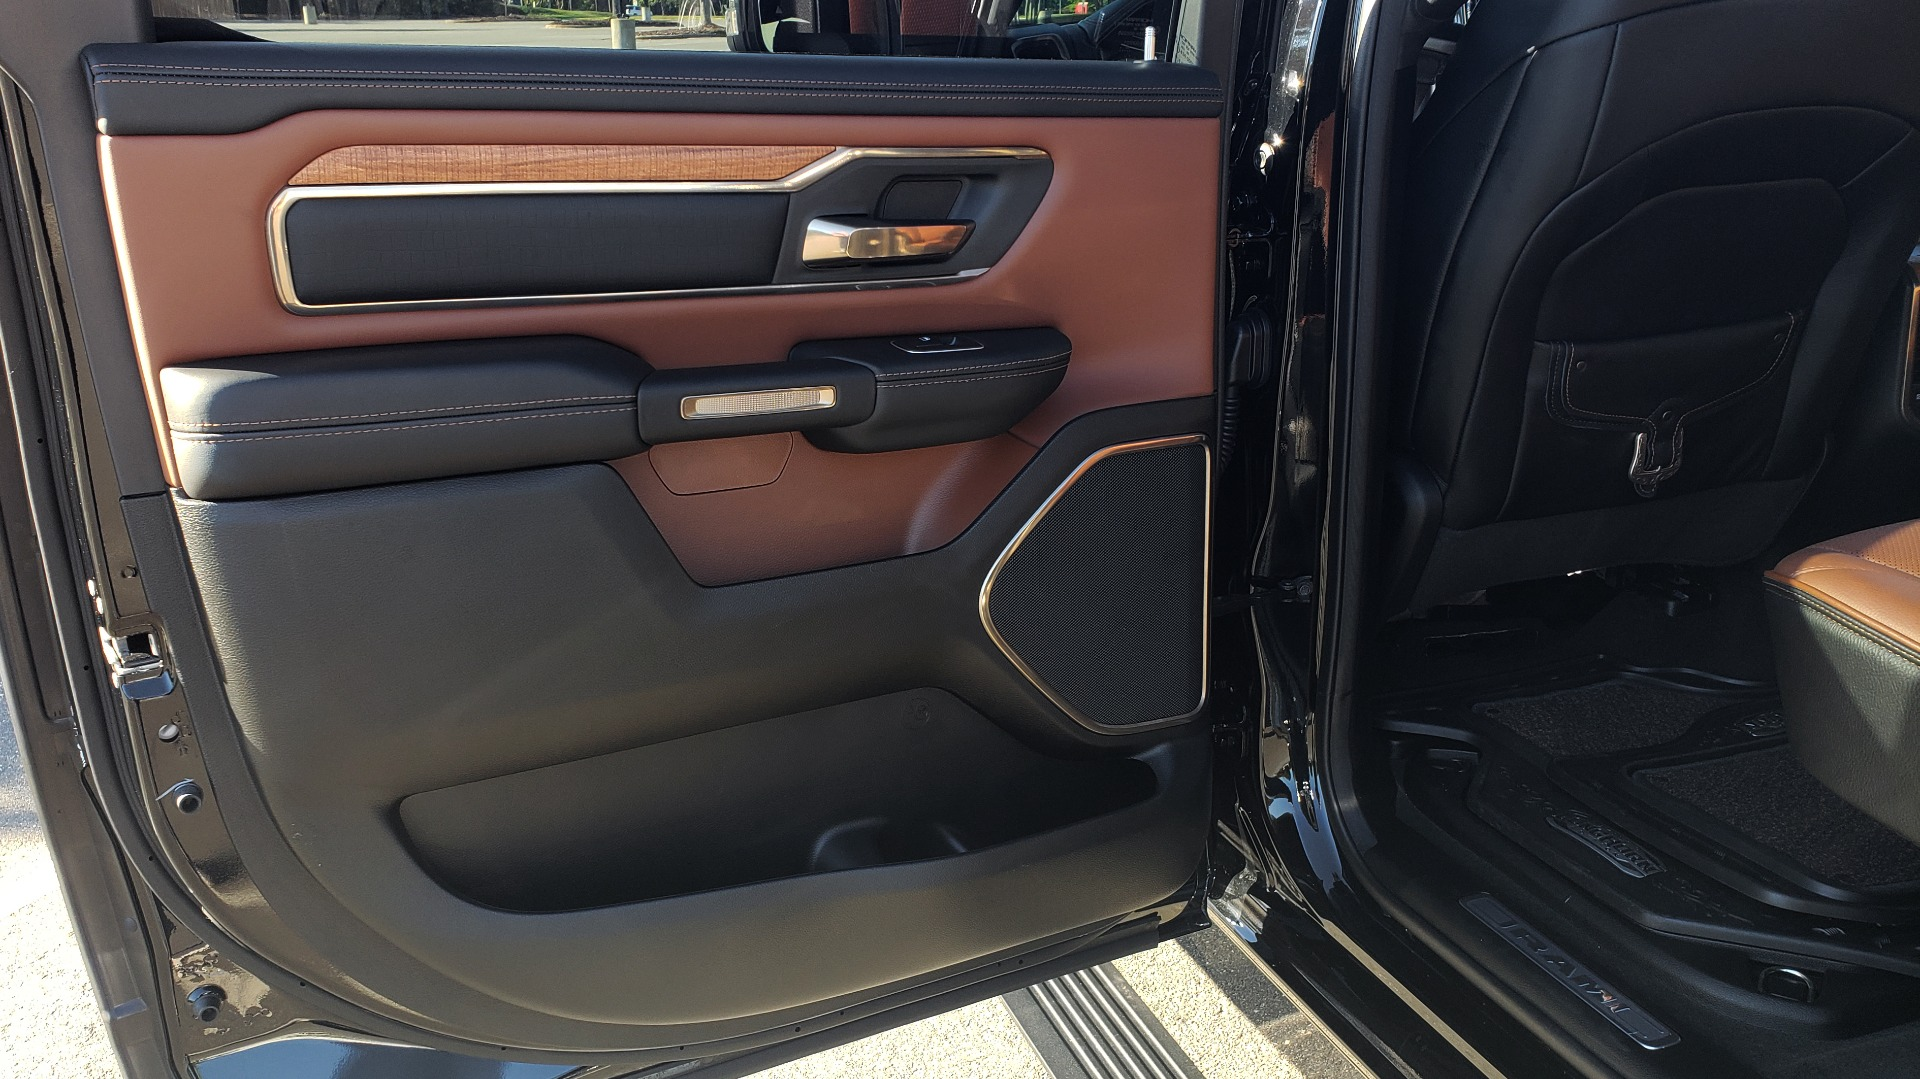 Used 2021 Ram 1500 LONGHORN LIMITED 4X4 / 5.7L HEMI / CREWCAB / H/K SND / PANO-ROOF / REARVIEW for sale $65,999 at Formula Imports in Charlotte NC 28227 54